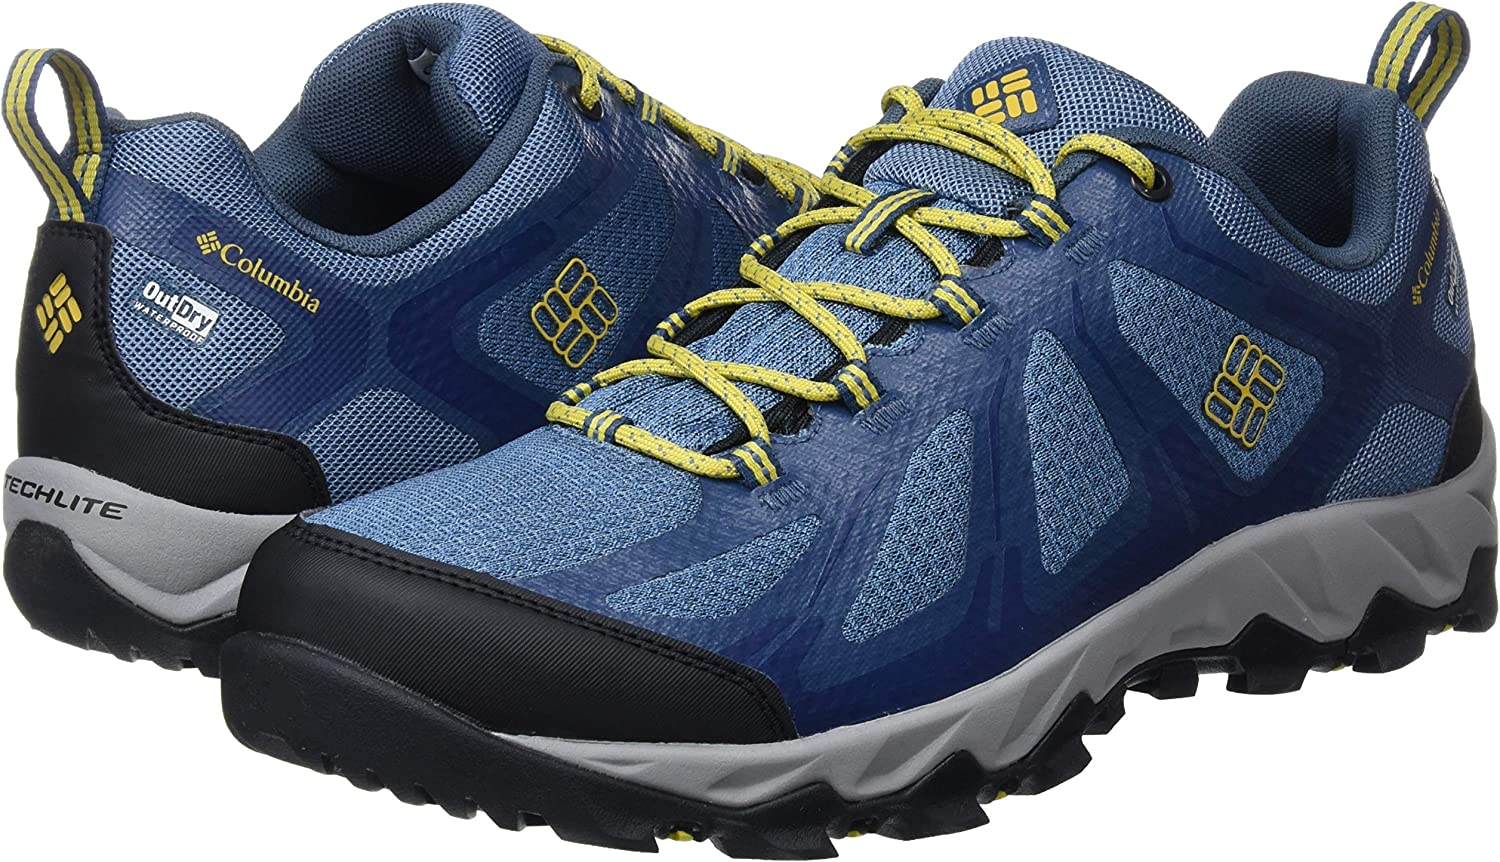 Columbia Homme Chaussures Multisport, Imperméable, PEAKFREAK XCRSN II XCEL LOW OUTDRY, Taille 41, Bleu (Steel, Antique Moss)